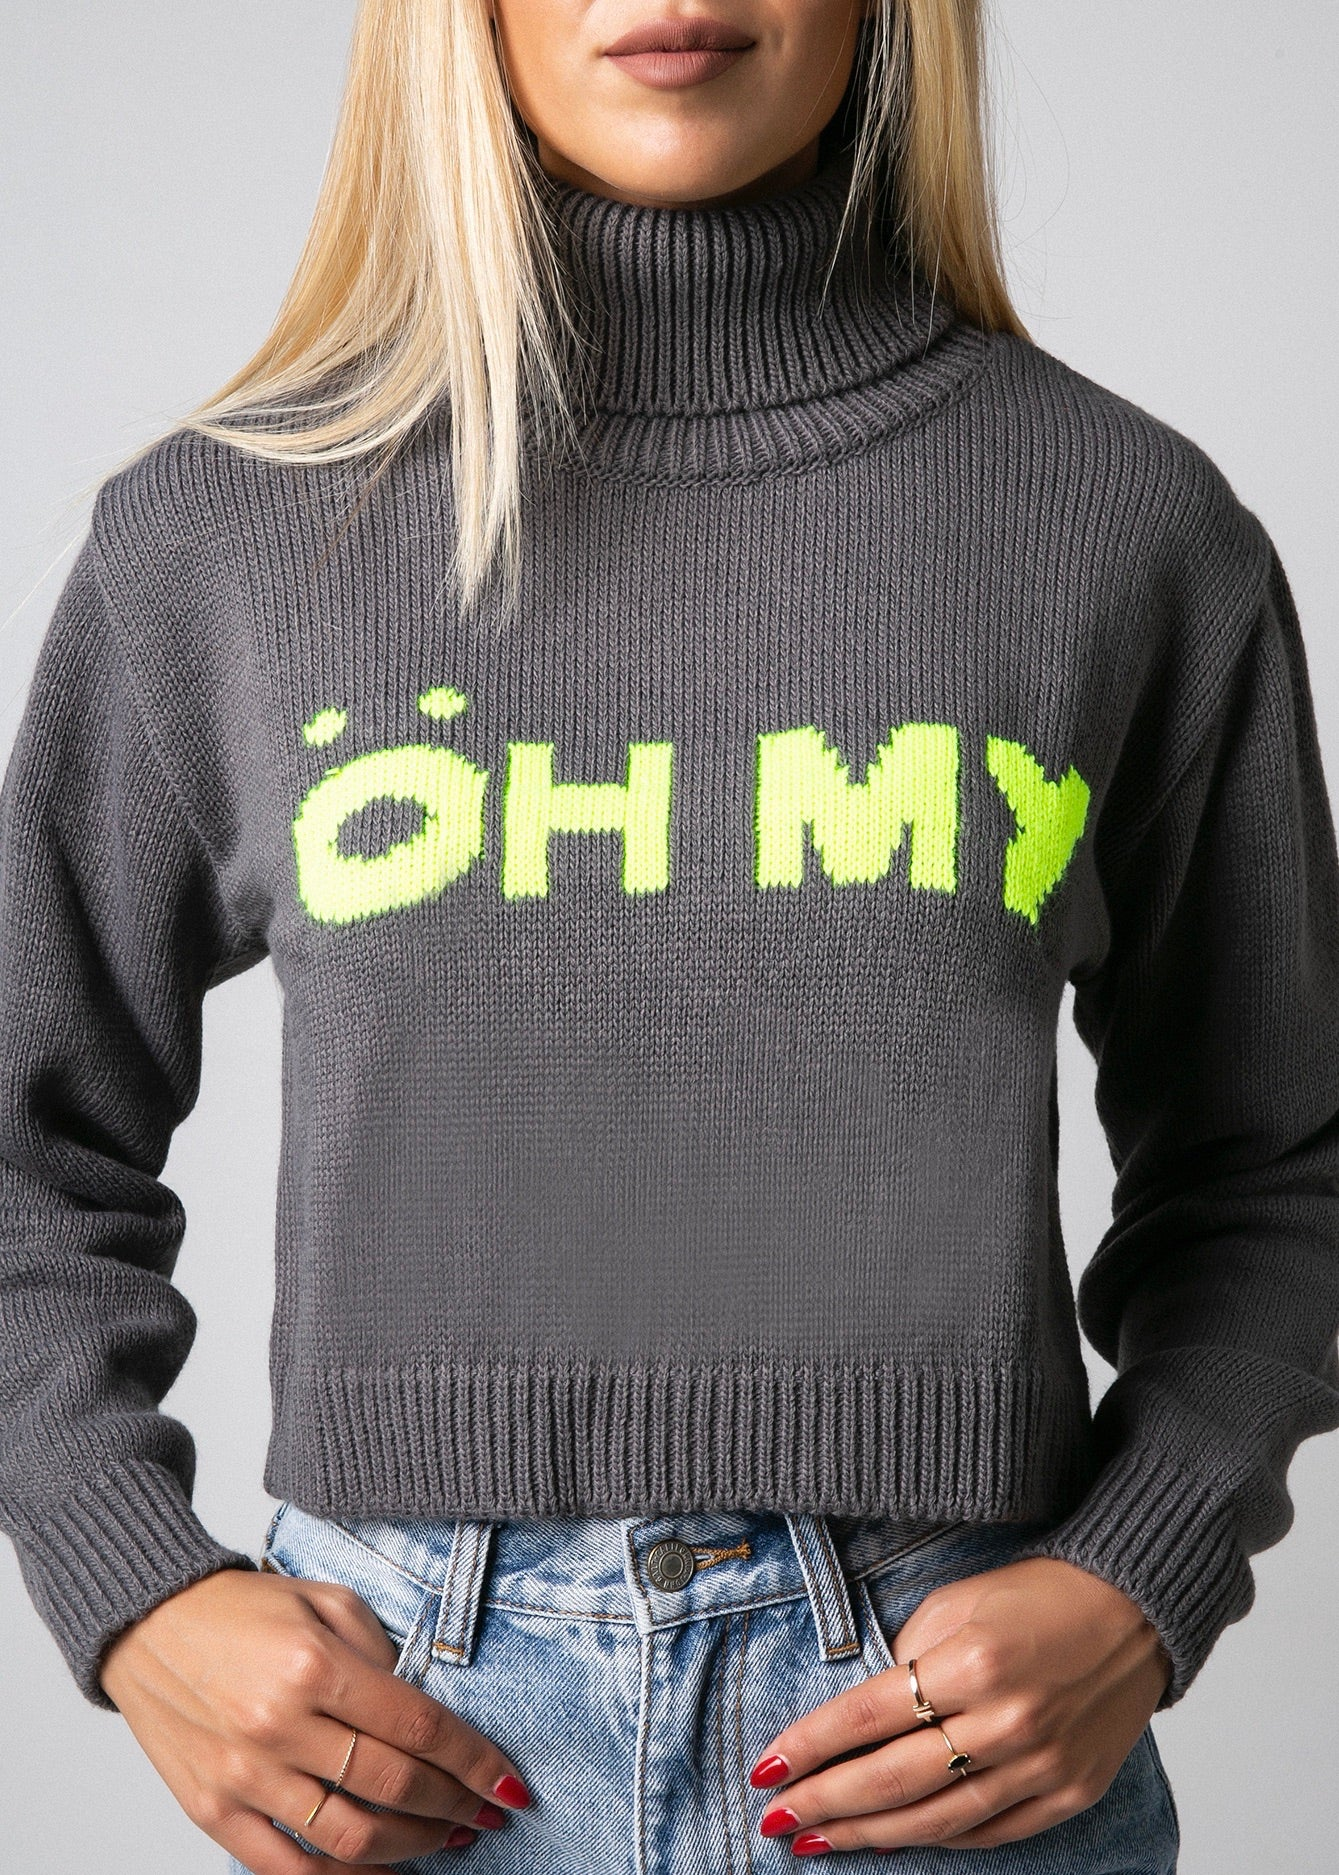 ÖH MY CROP SWEATER